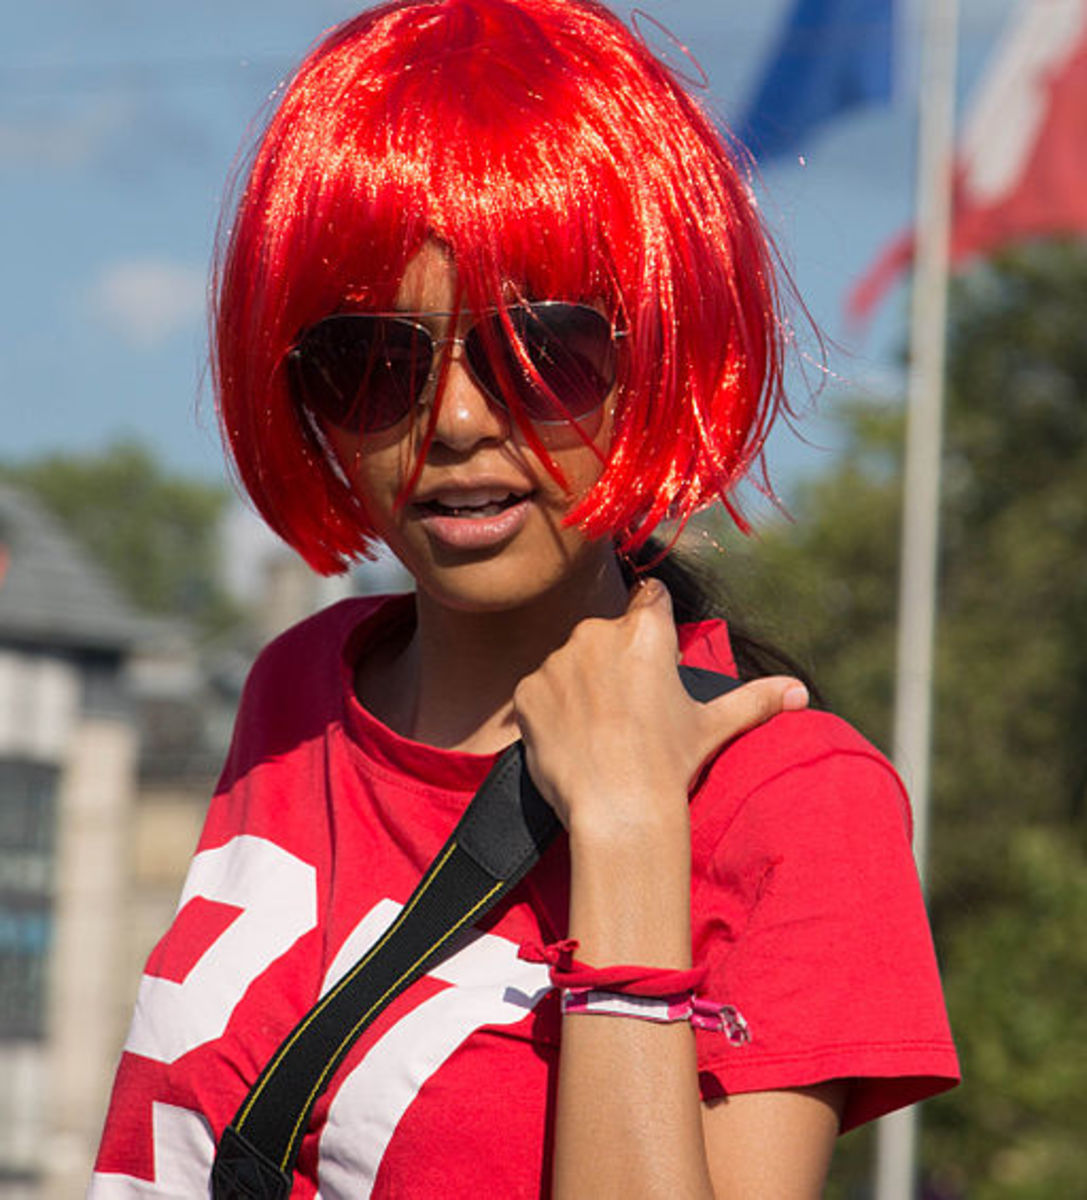 Woman wearing a red wig at Street Parade in Zürich in 2013.